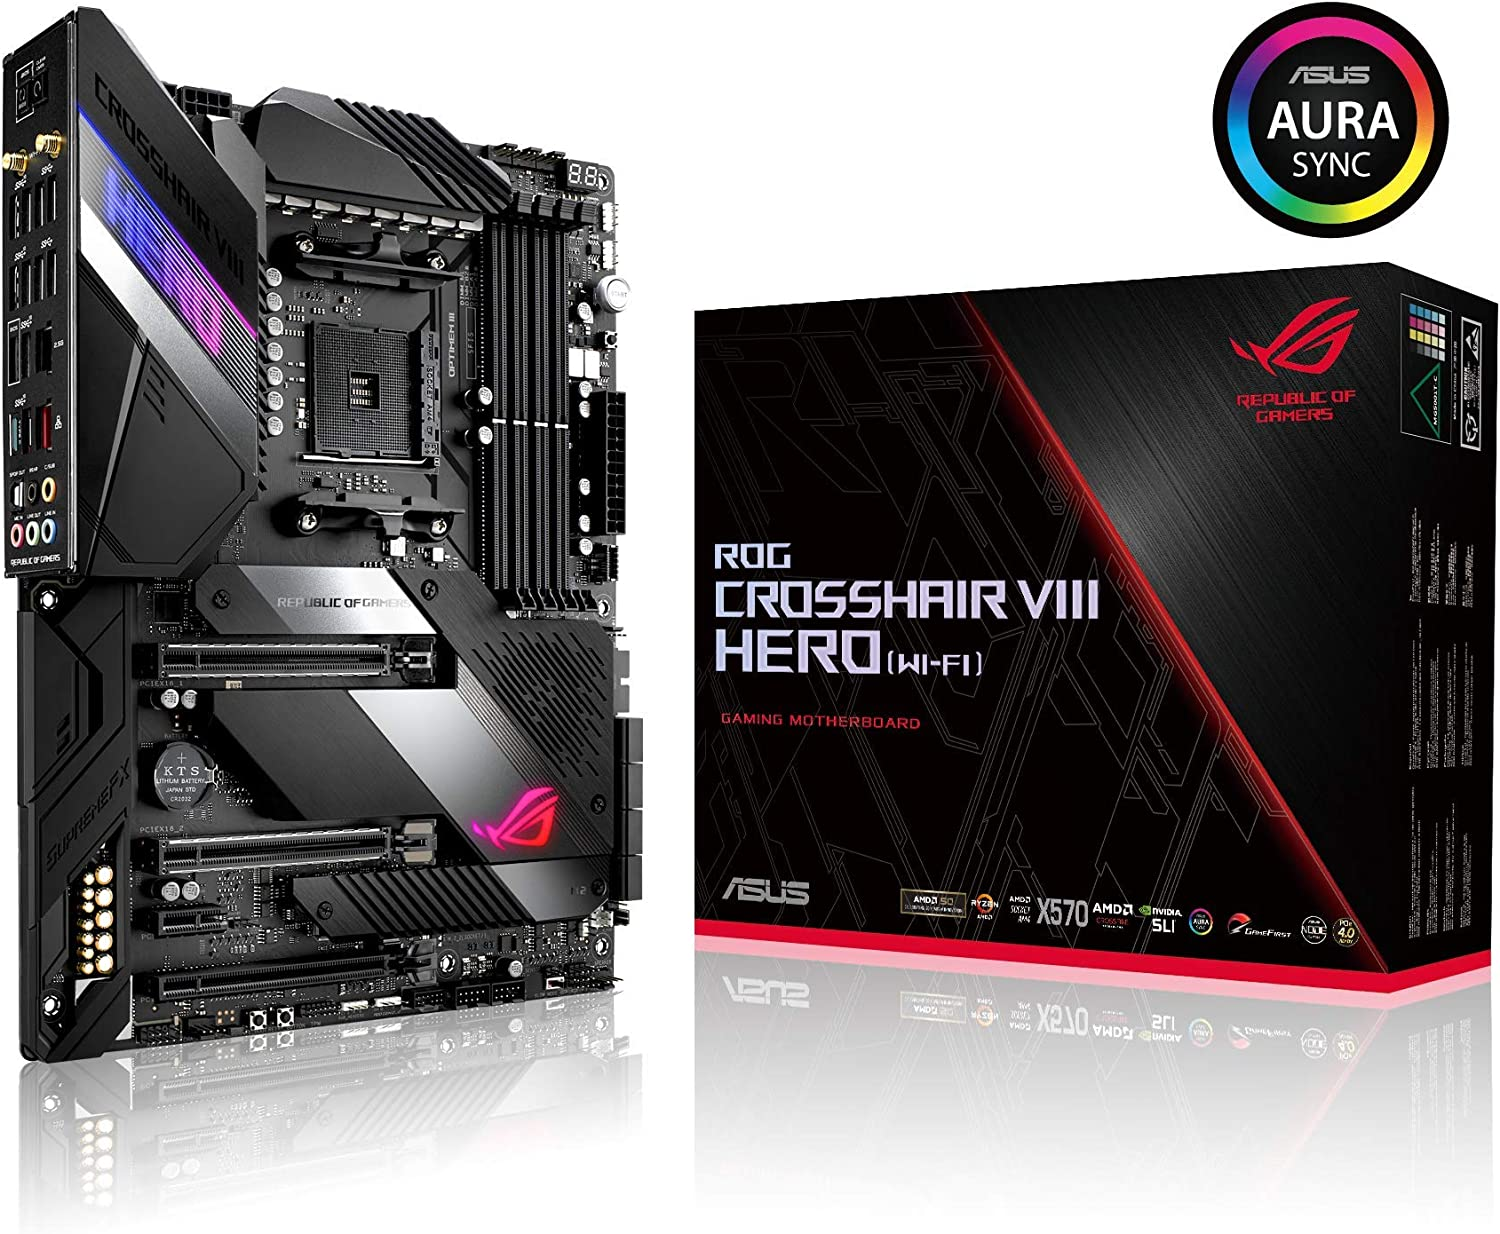 Asus ROG X570 Crosshair VIII Hero (Wi-Fi) ATX Motherboard with PCIe 4.0, on-Board WiFi 6 (802.11Ax), 2.5 Gbps LAN, USB 3.2, SATA, M.2, Node and Aura ...